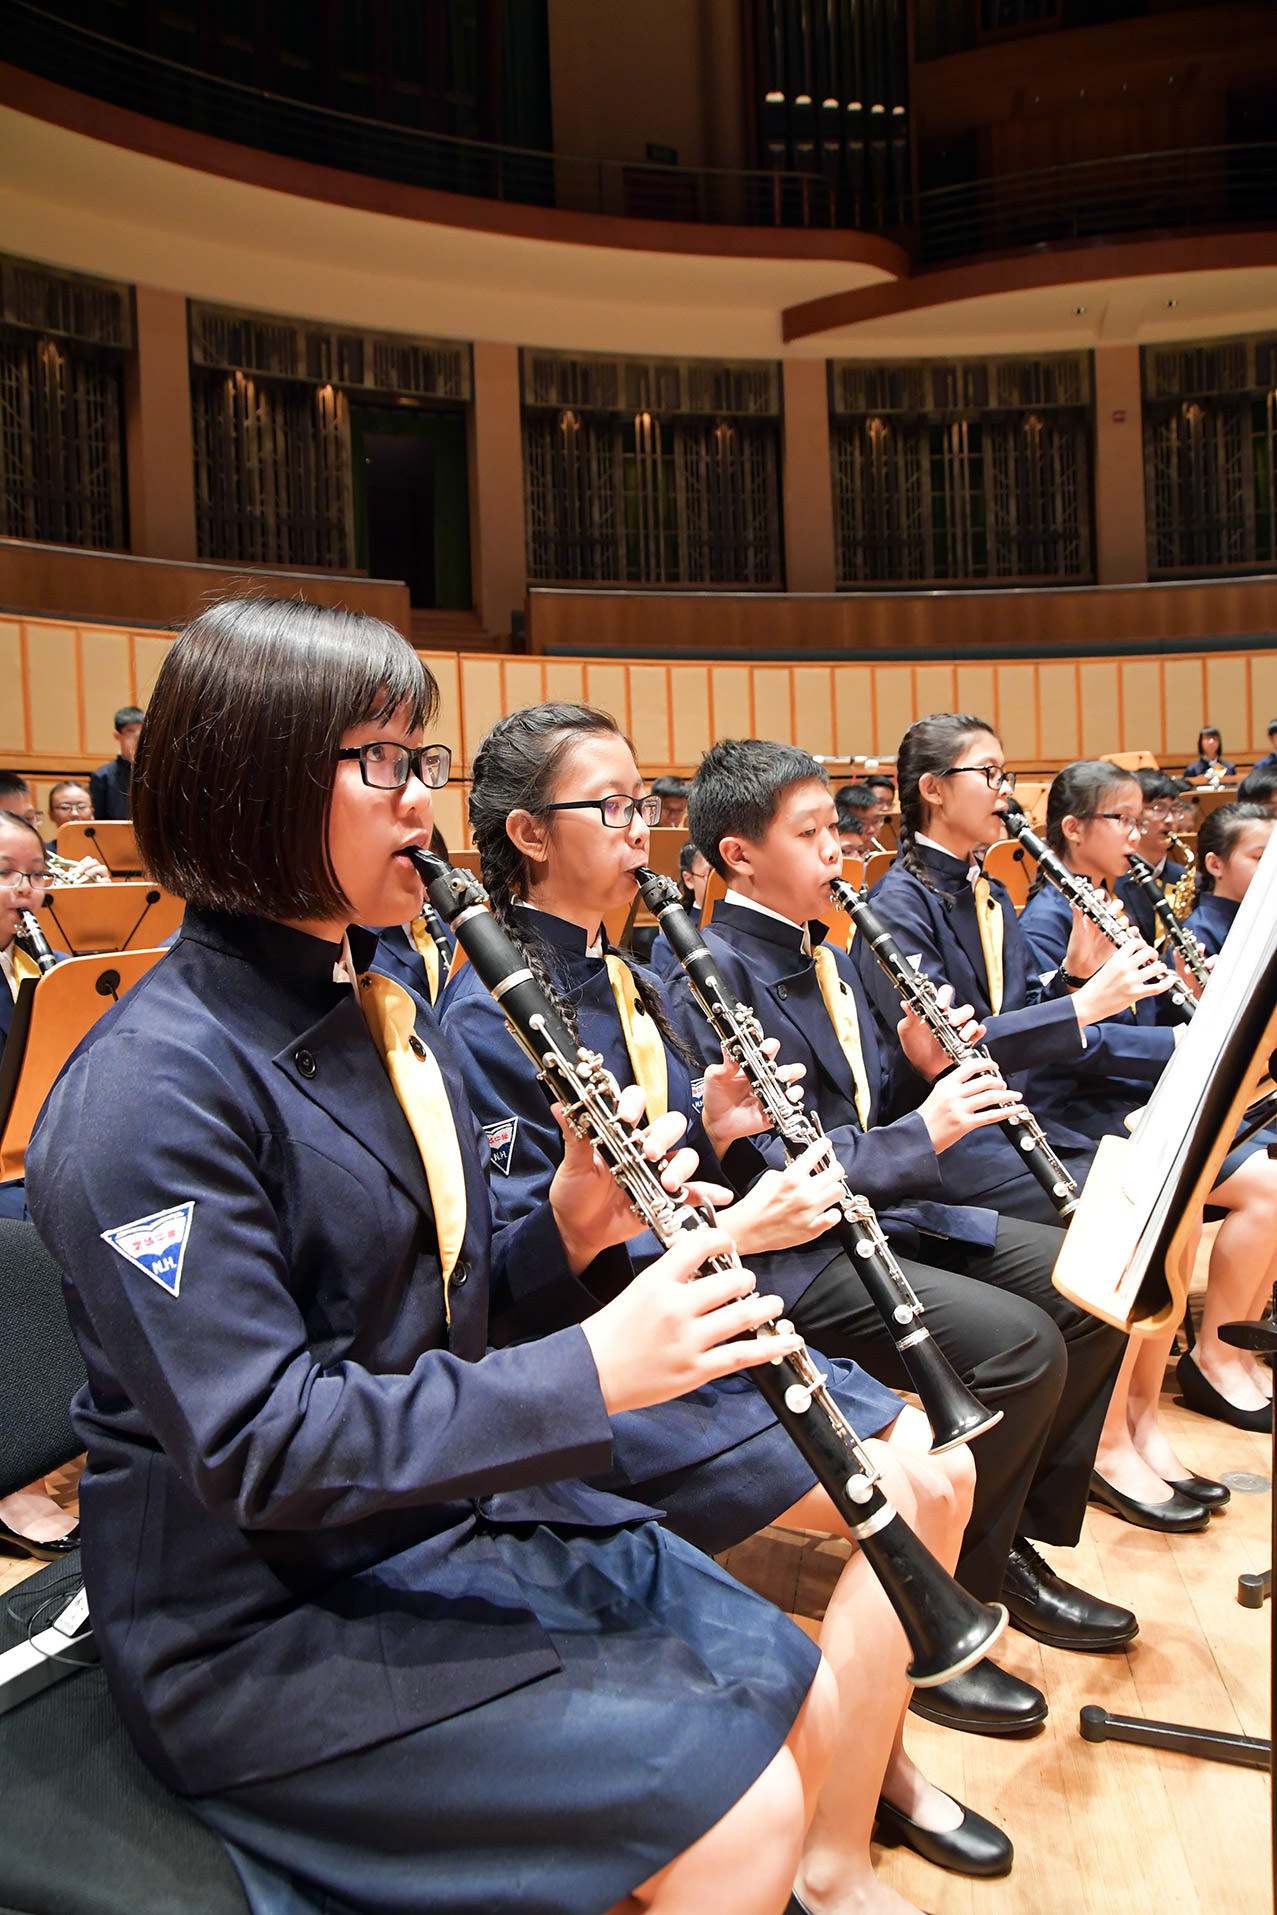 SYF-Arts-Presentation-Woodwinds-Section.jpg